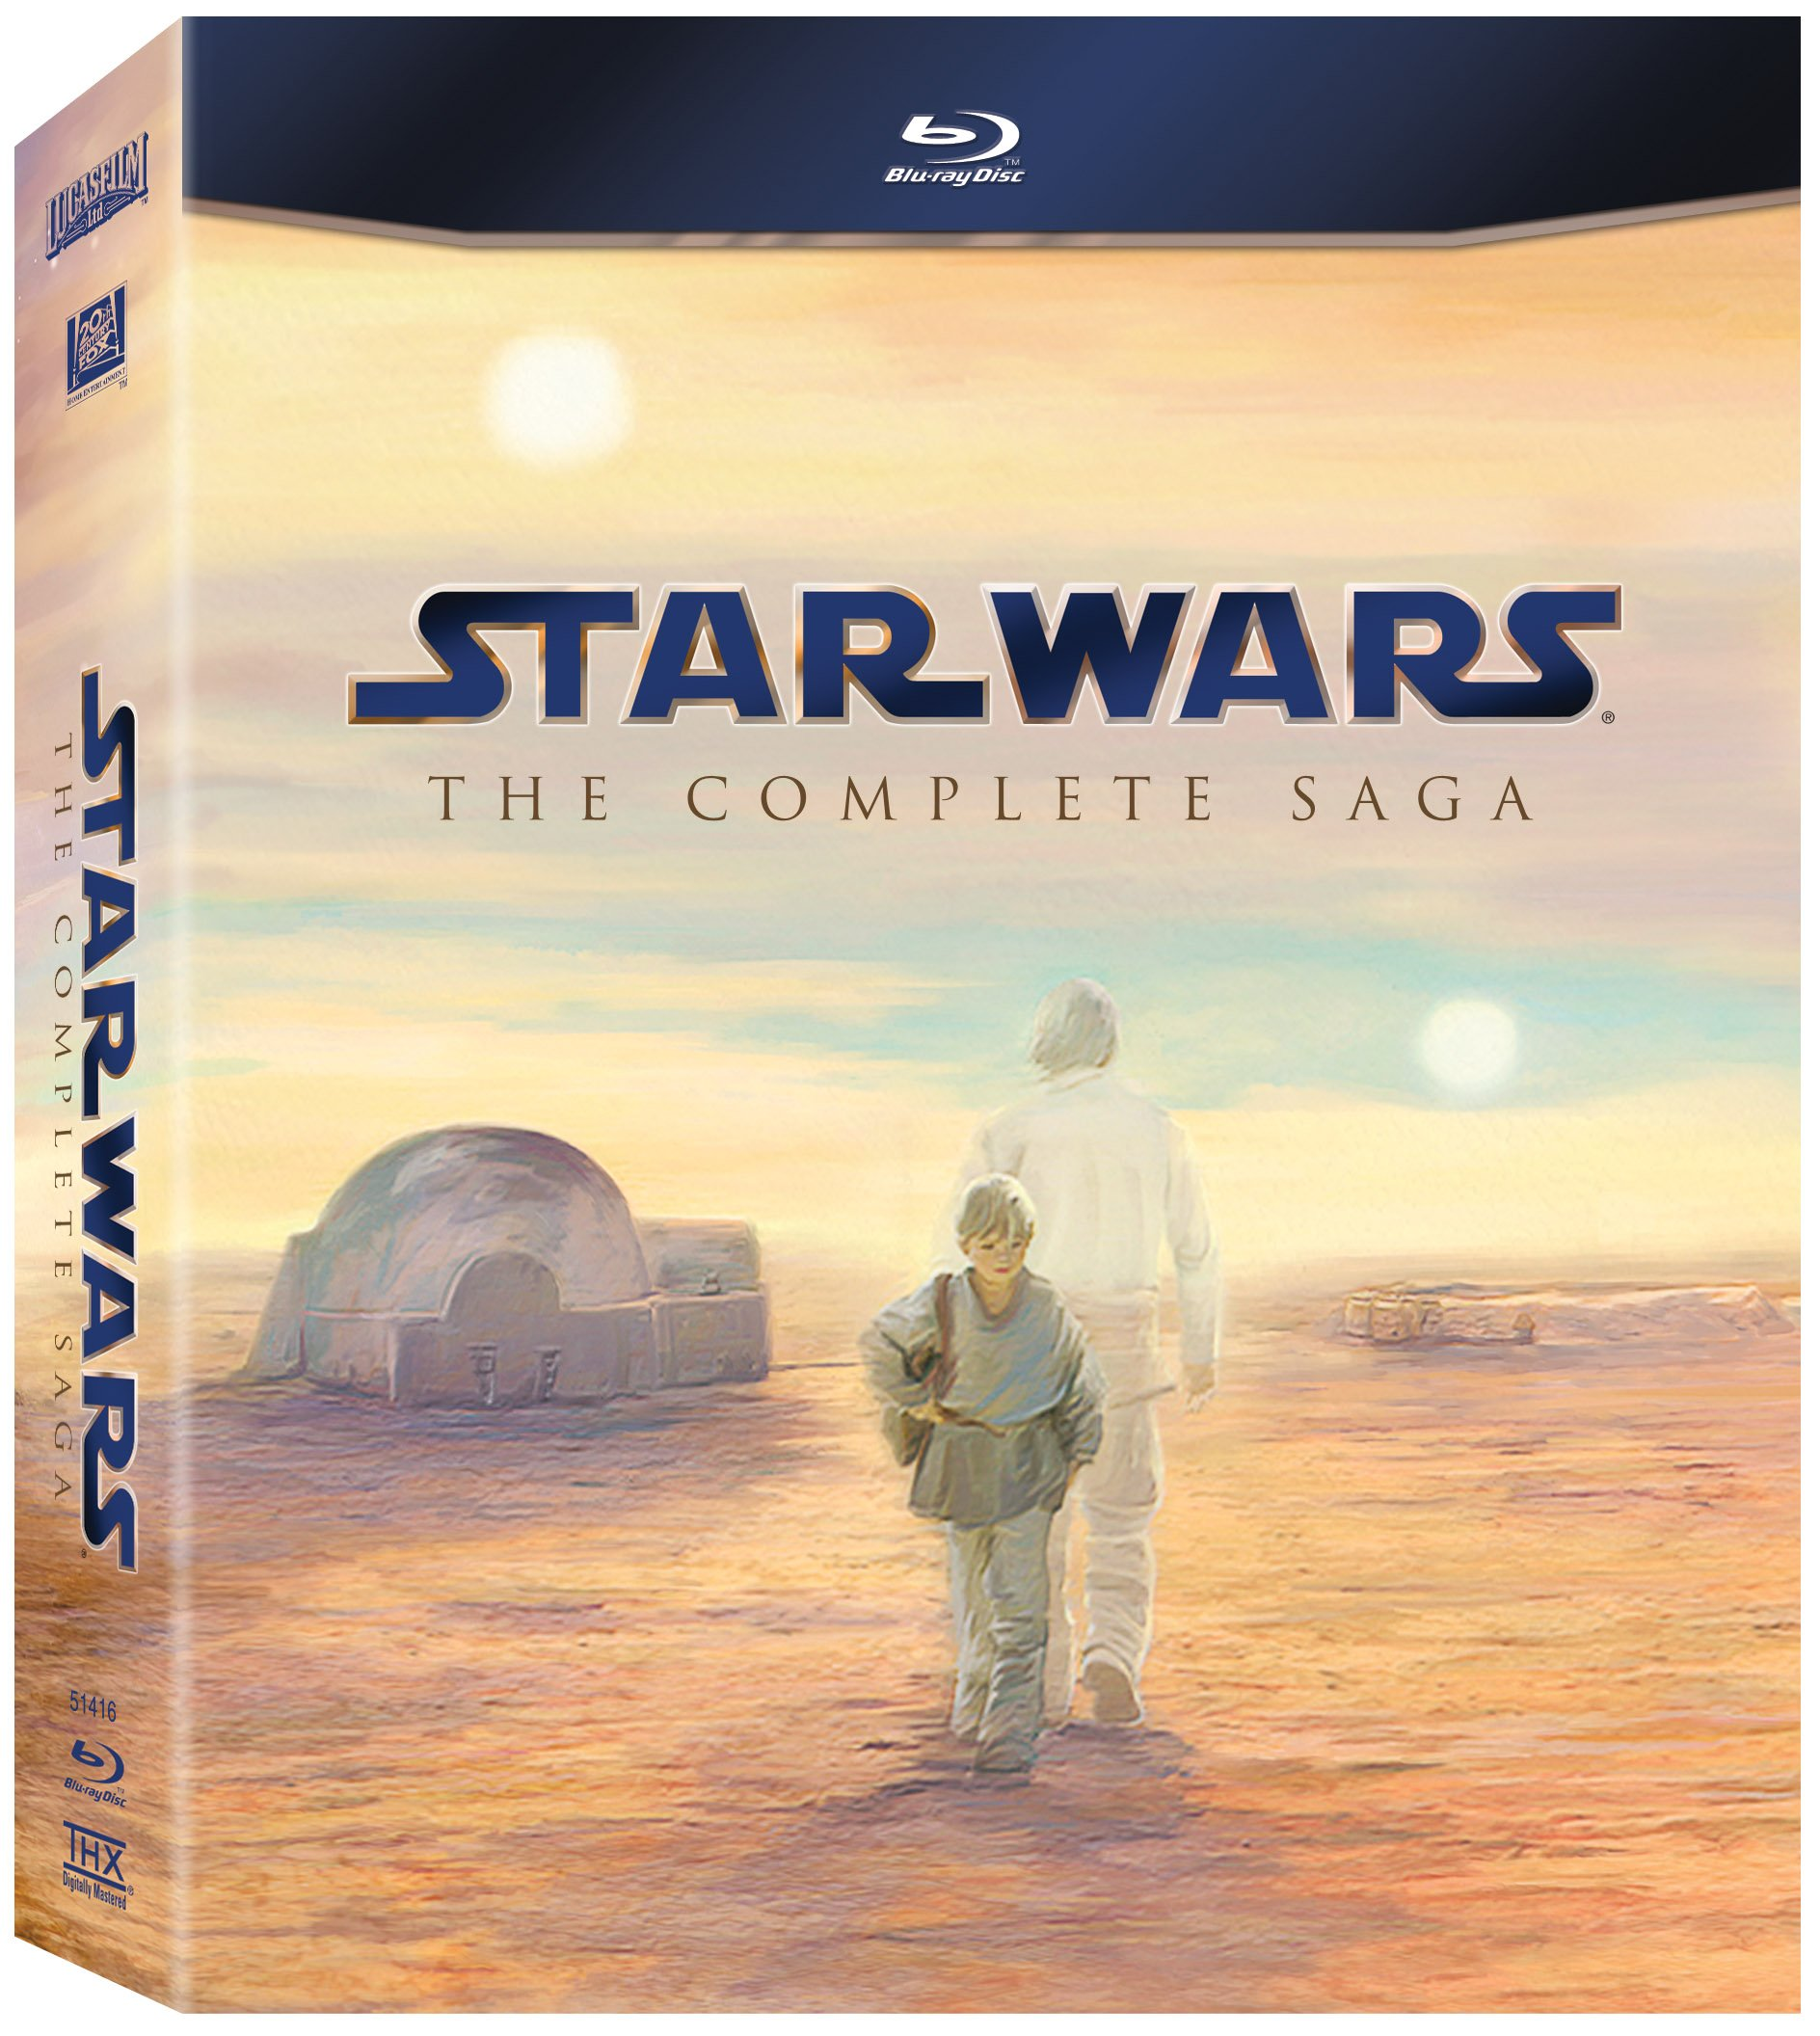 Star Wars: The Complete Saga Blu-Ray box